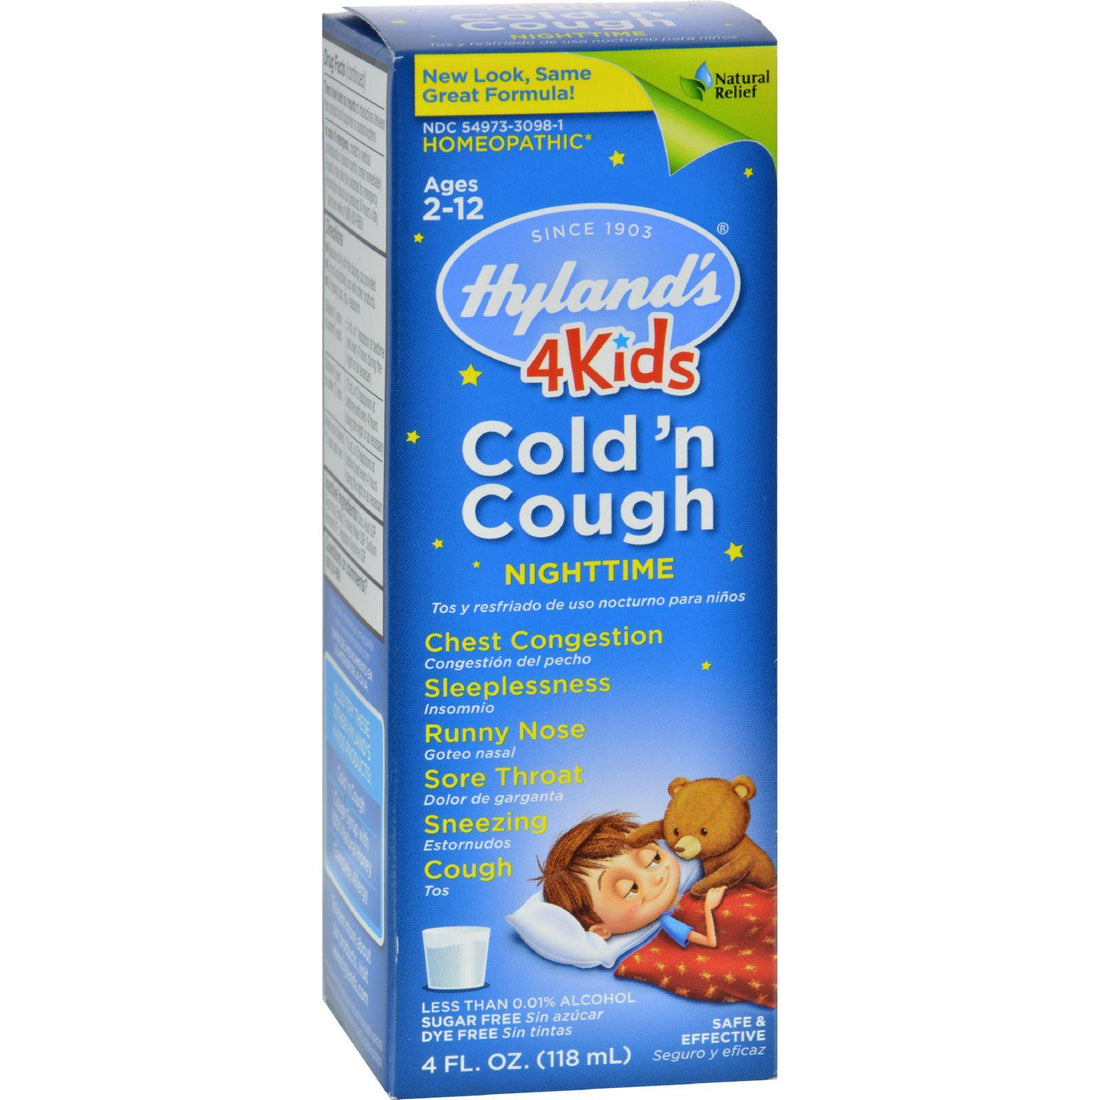 Mother Mantis: Hyland's Night Time Cold N Cough 4 Kids - 4 Fl Oz Hyland's